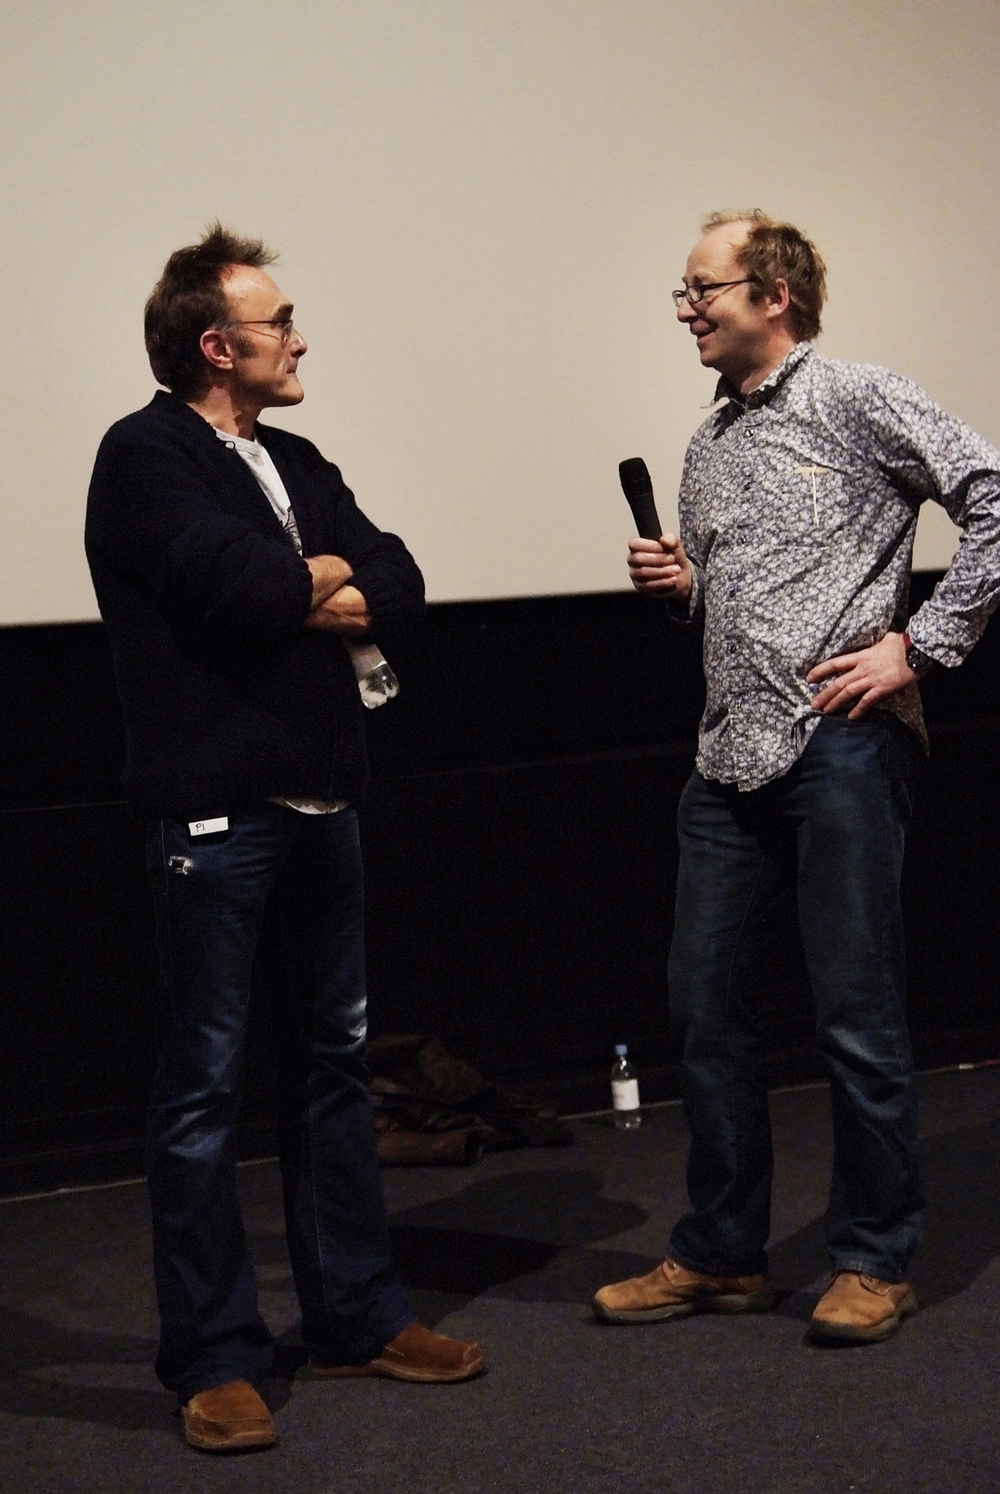 John Hardy leads a masterclass with Danny Boyle at Soundtrack Film Festival